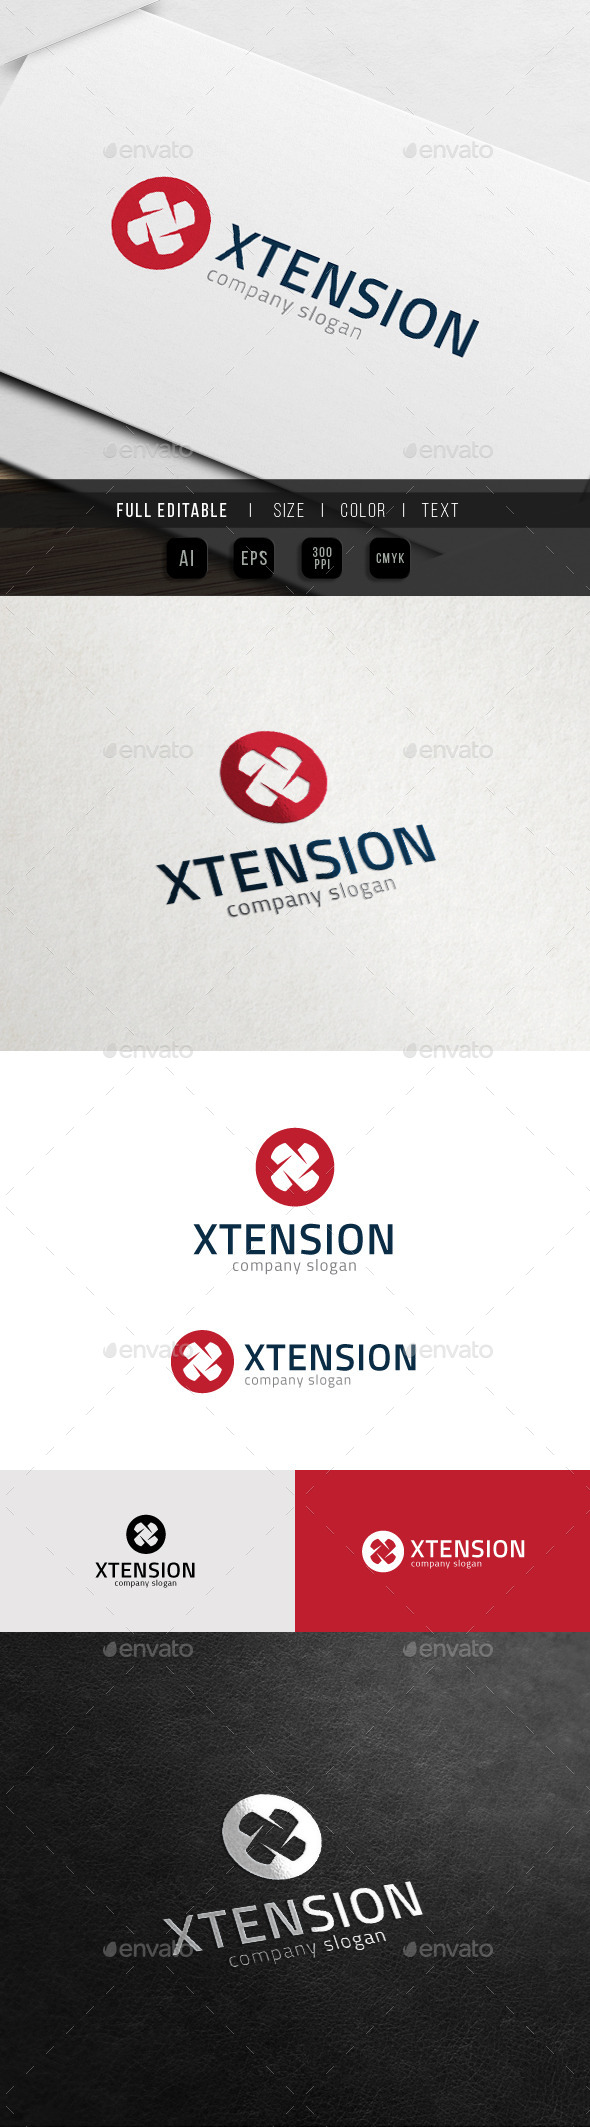 Extreme Game - Extension - Letter X Logo